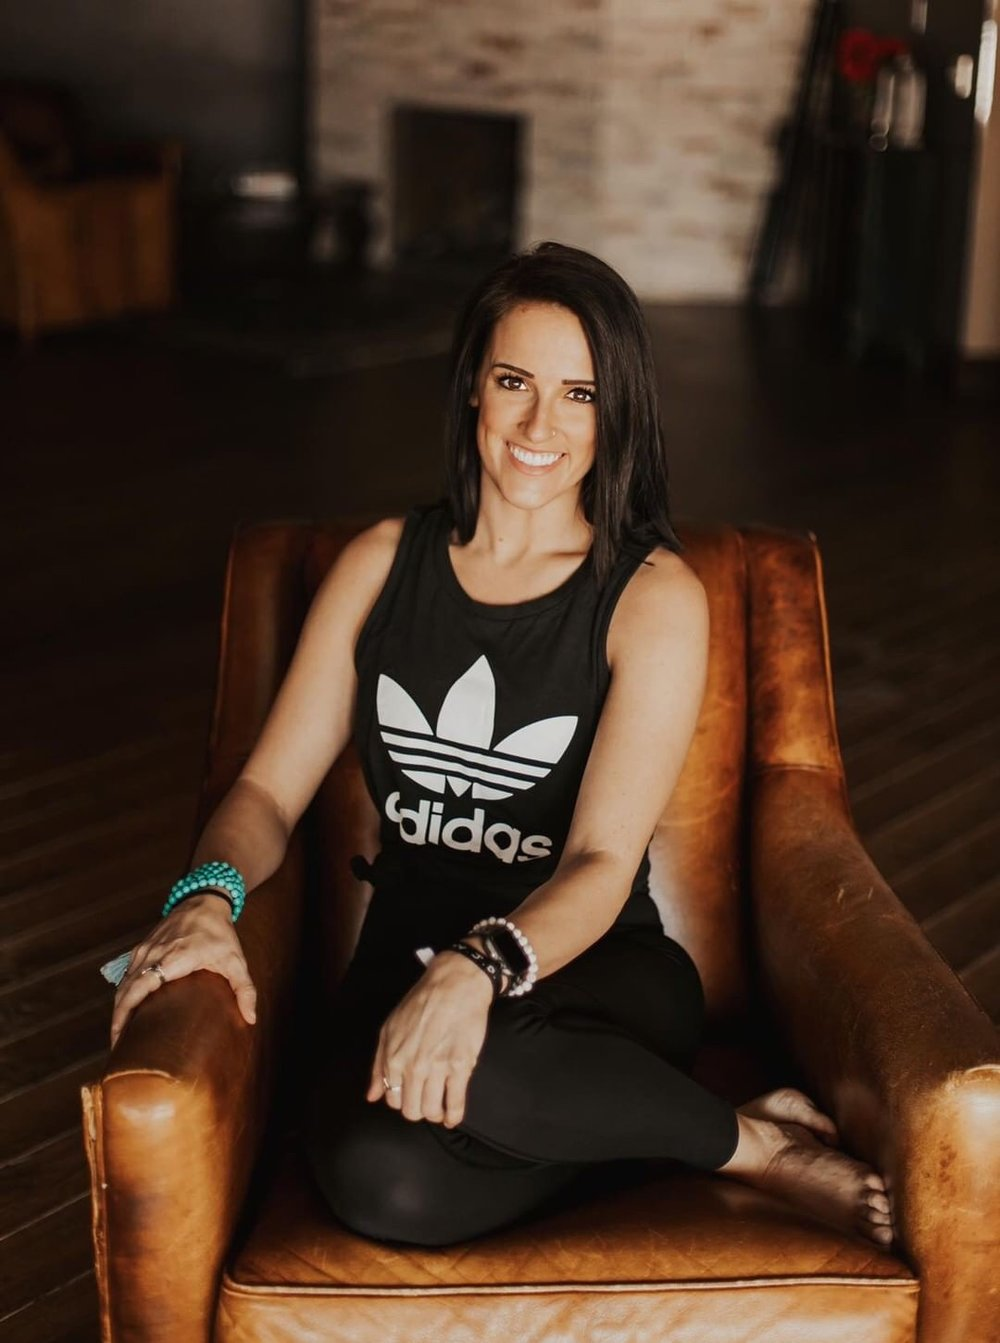 YOGA - LADIES: you're going to want to pencil this one in to your planners.Thursday; March 21st from 6:30-7:30PM yoga instructor Morgan Fisher will be offering a FREE power yoga class at tre Ministries.That is NOT A TYPO. The class will be free!!! (And a stinkin' boatloads of fun). This class is for ALL level yogis; beginners and advanced! WE WILL SEE YOU ON THE MAT, LADIES.(FYI: if you do not own a mat, Walmart and target sell them for cheap.) — with Morgan Fisher.